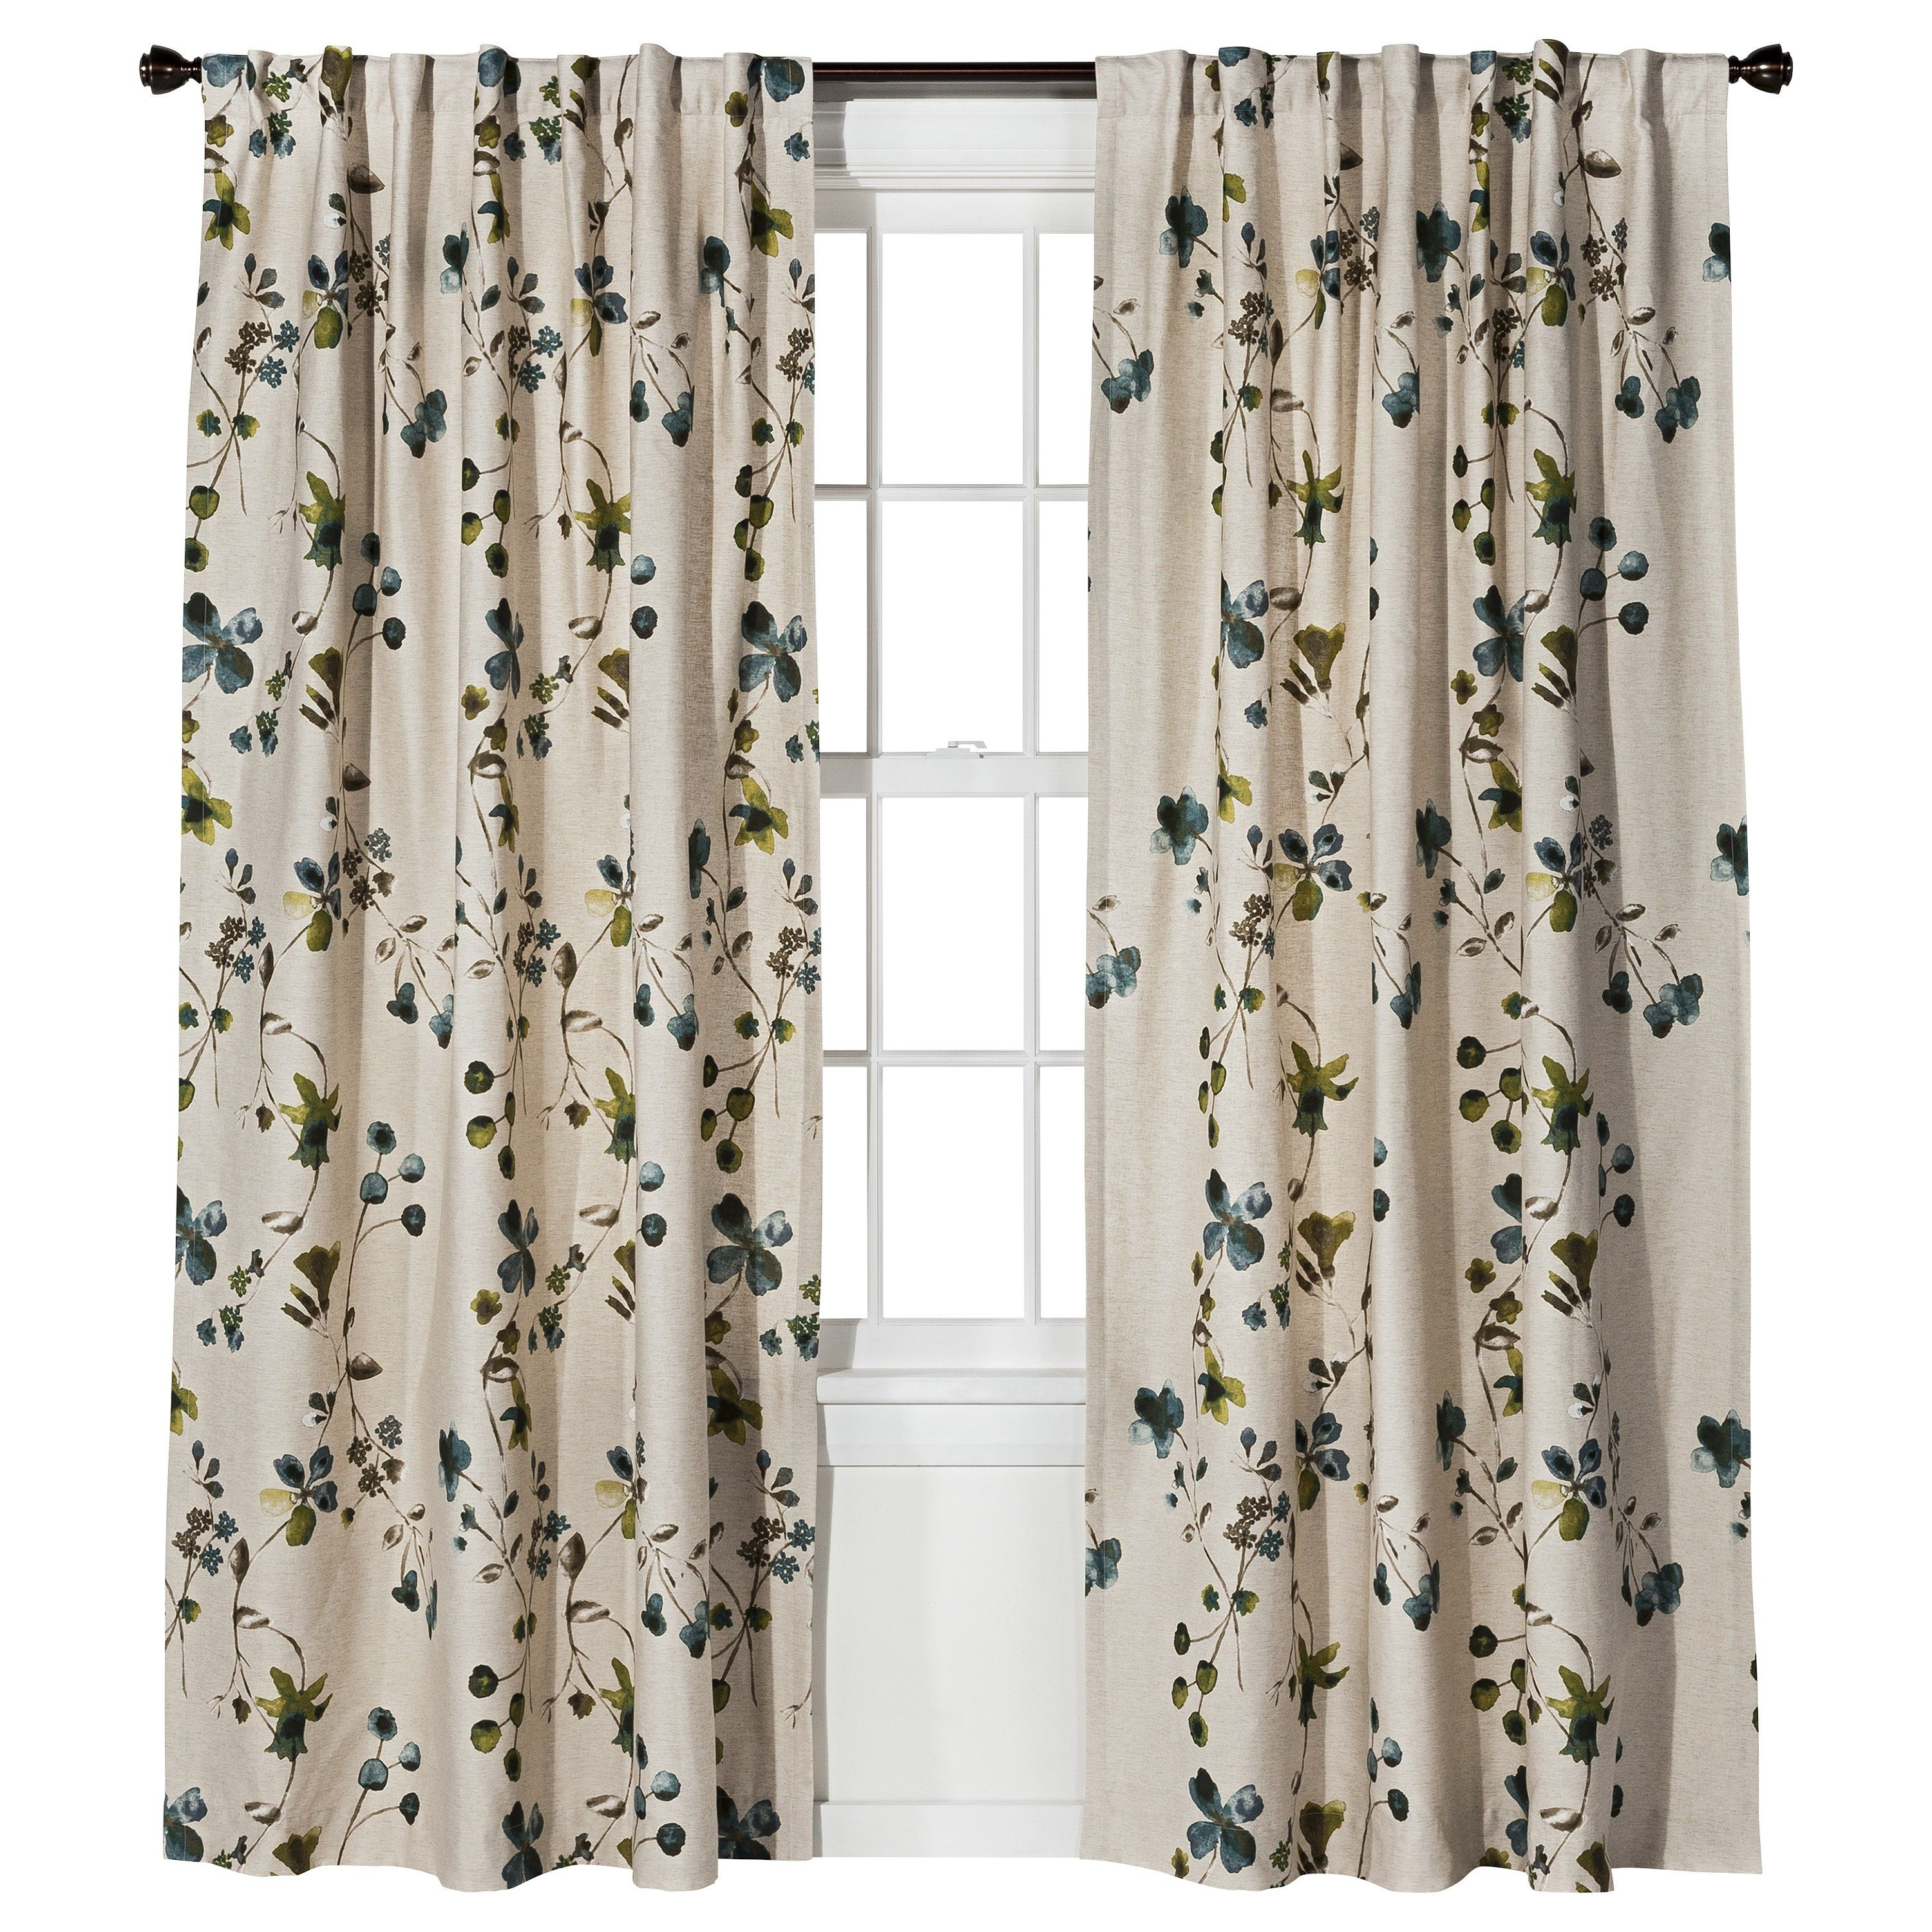 Threshold Watercolor Floral Window Panel Target Curtain??